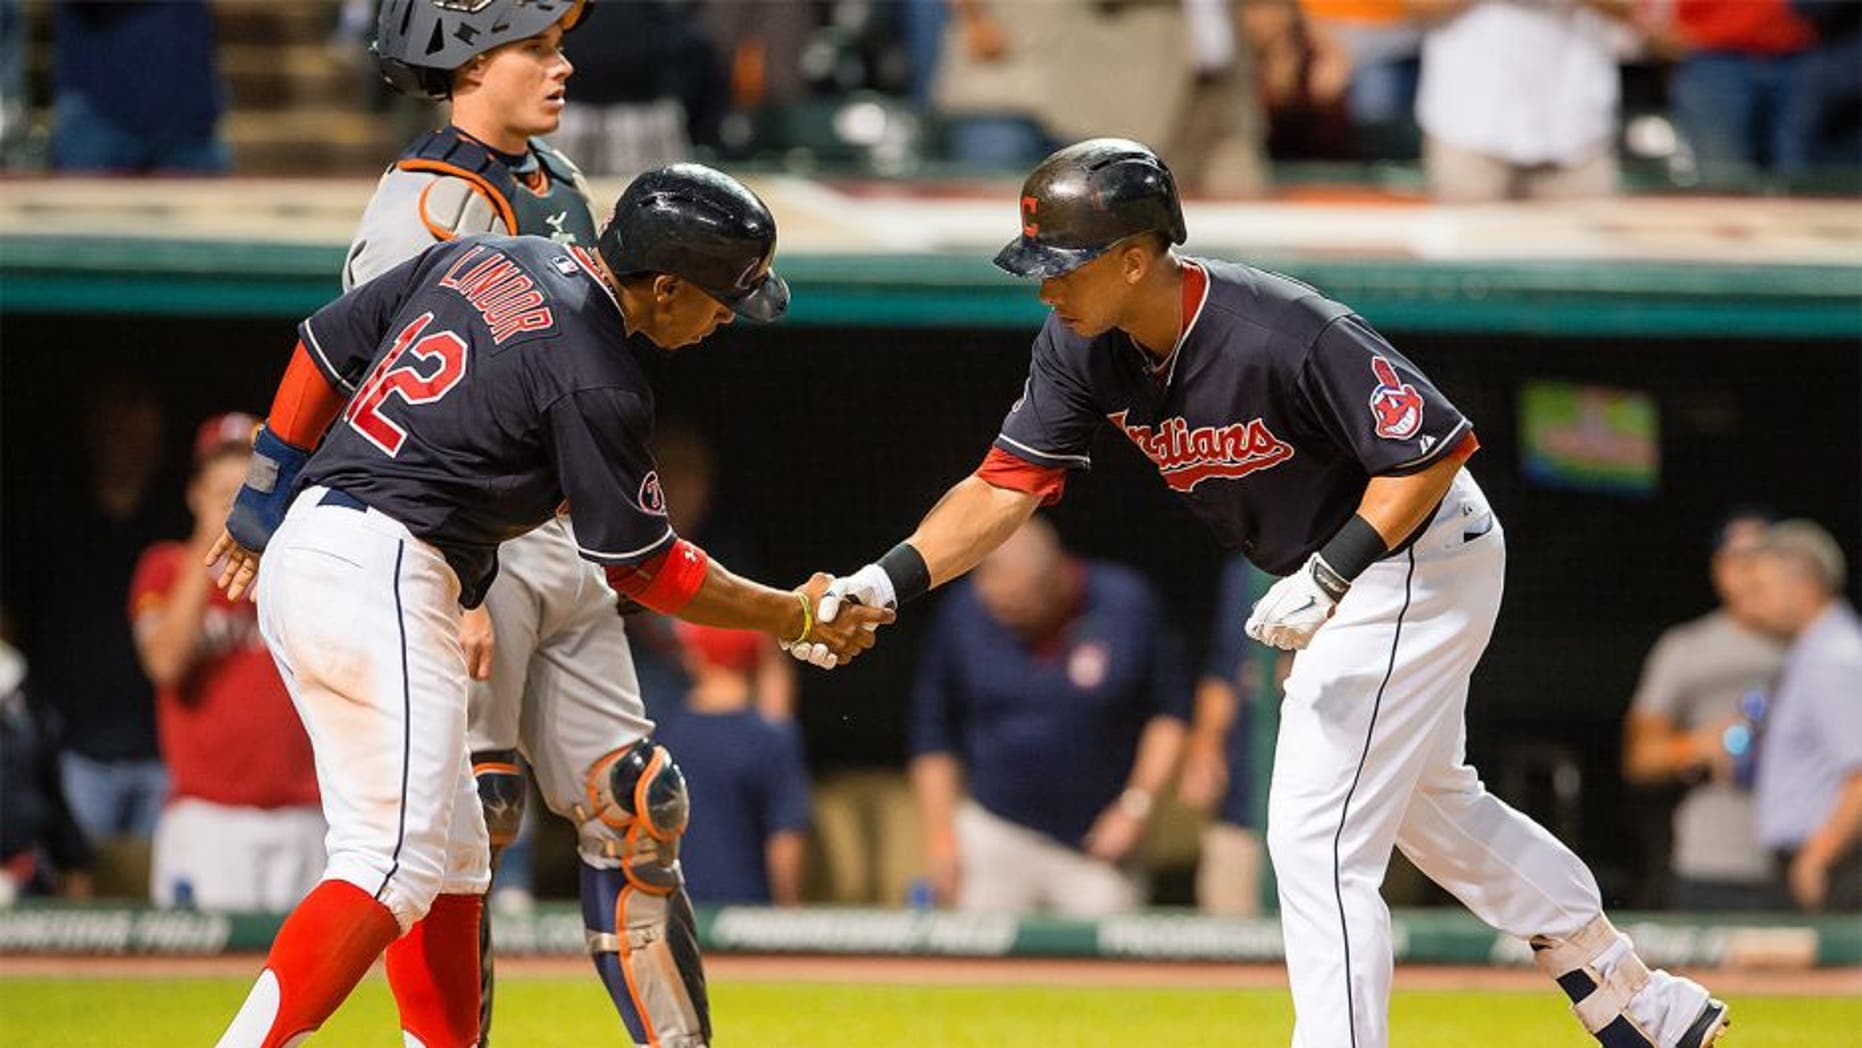 CLEVELAND, OH - SEPTEMBER 10: Francisco Lindor #12 of celebrates with Michael Brantley #23 of the Cleveland Indians after Brantley hit a two run home run during the eighth inning against the Detroit Tigers at Progressive Field on September 10, 2015 in Cleveland, Ohio. (Photo by Jason Miller/Getty Images)